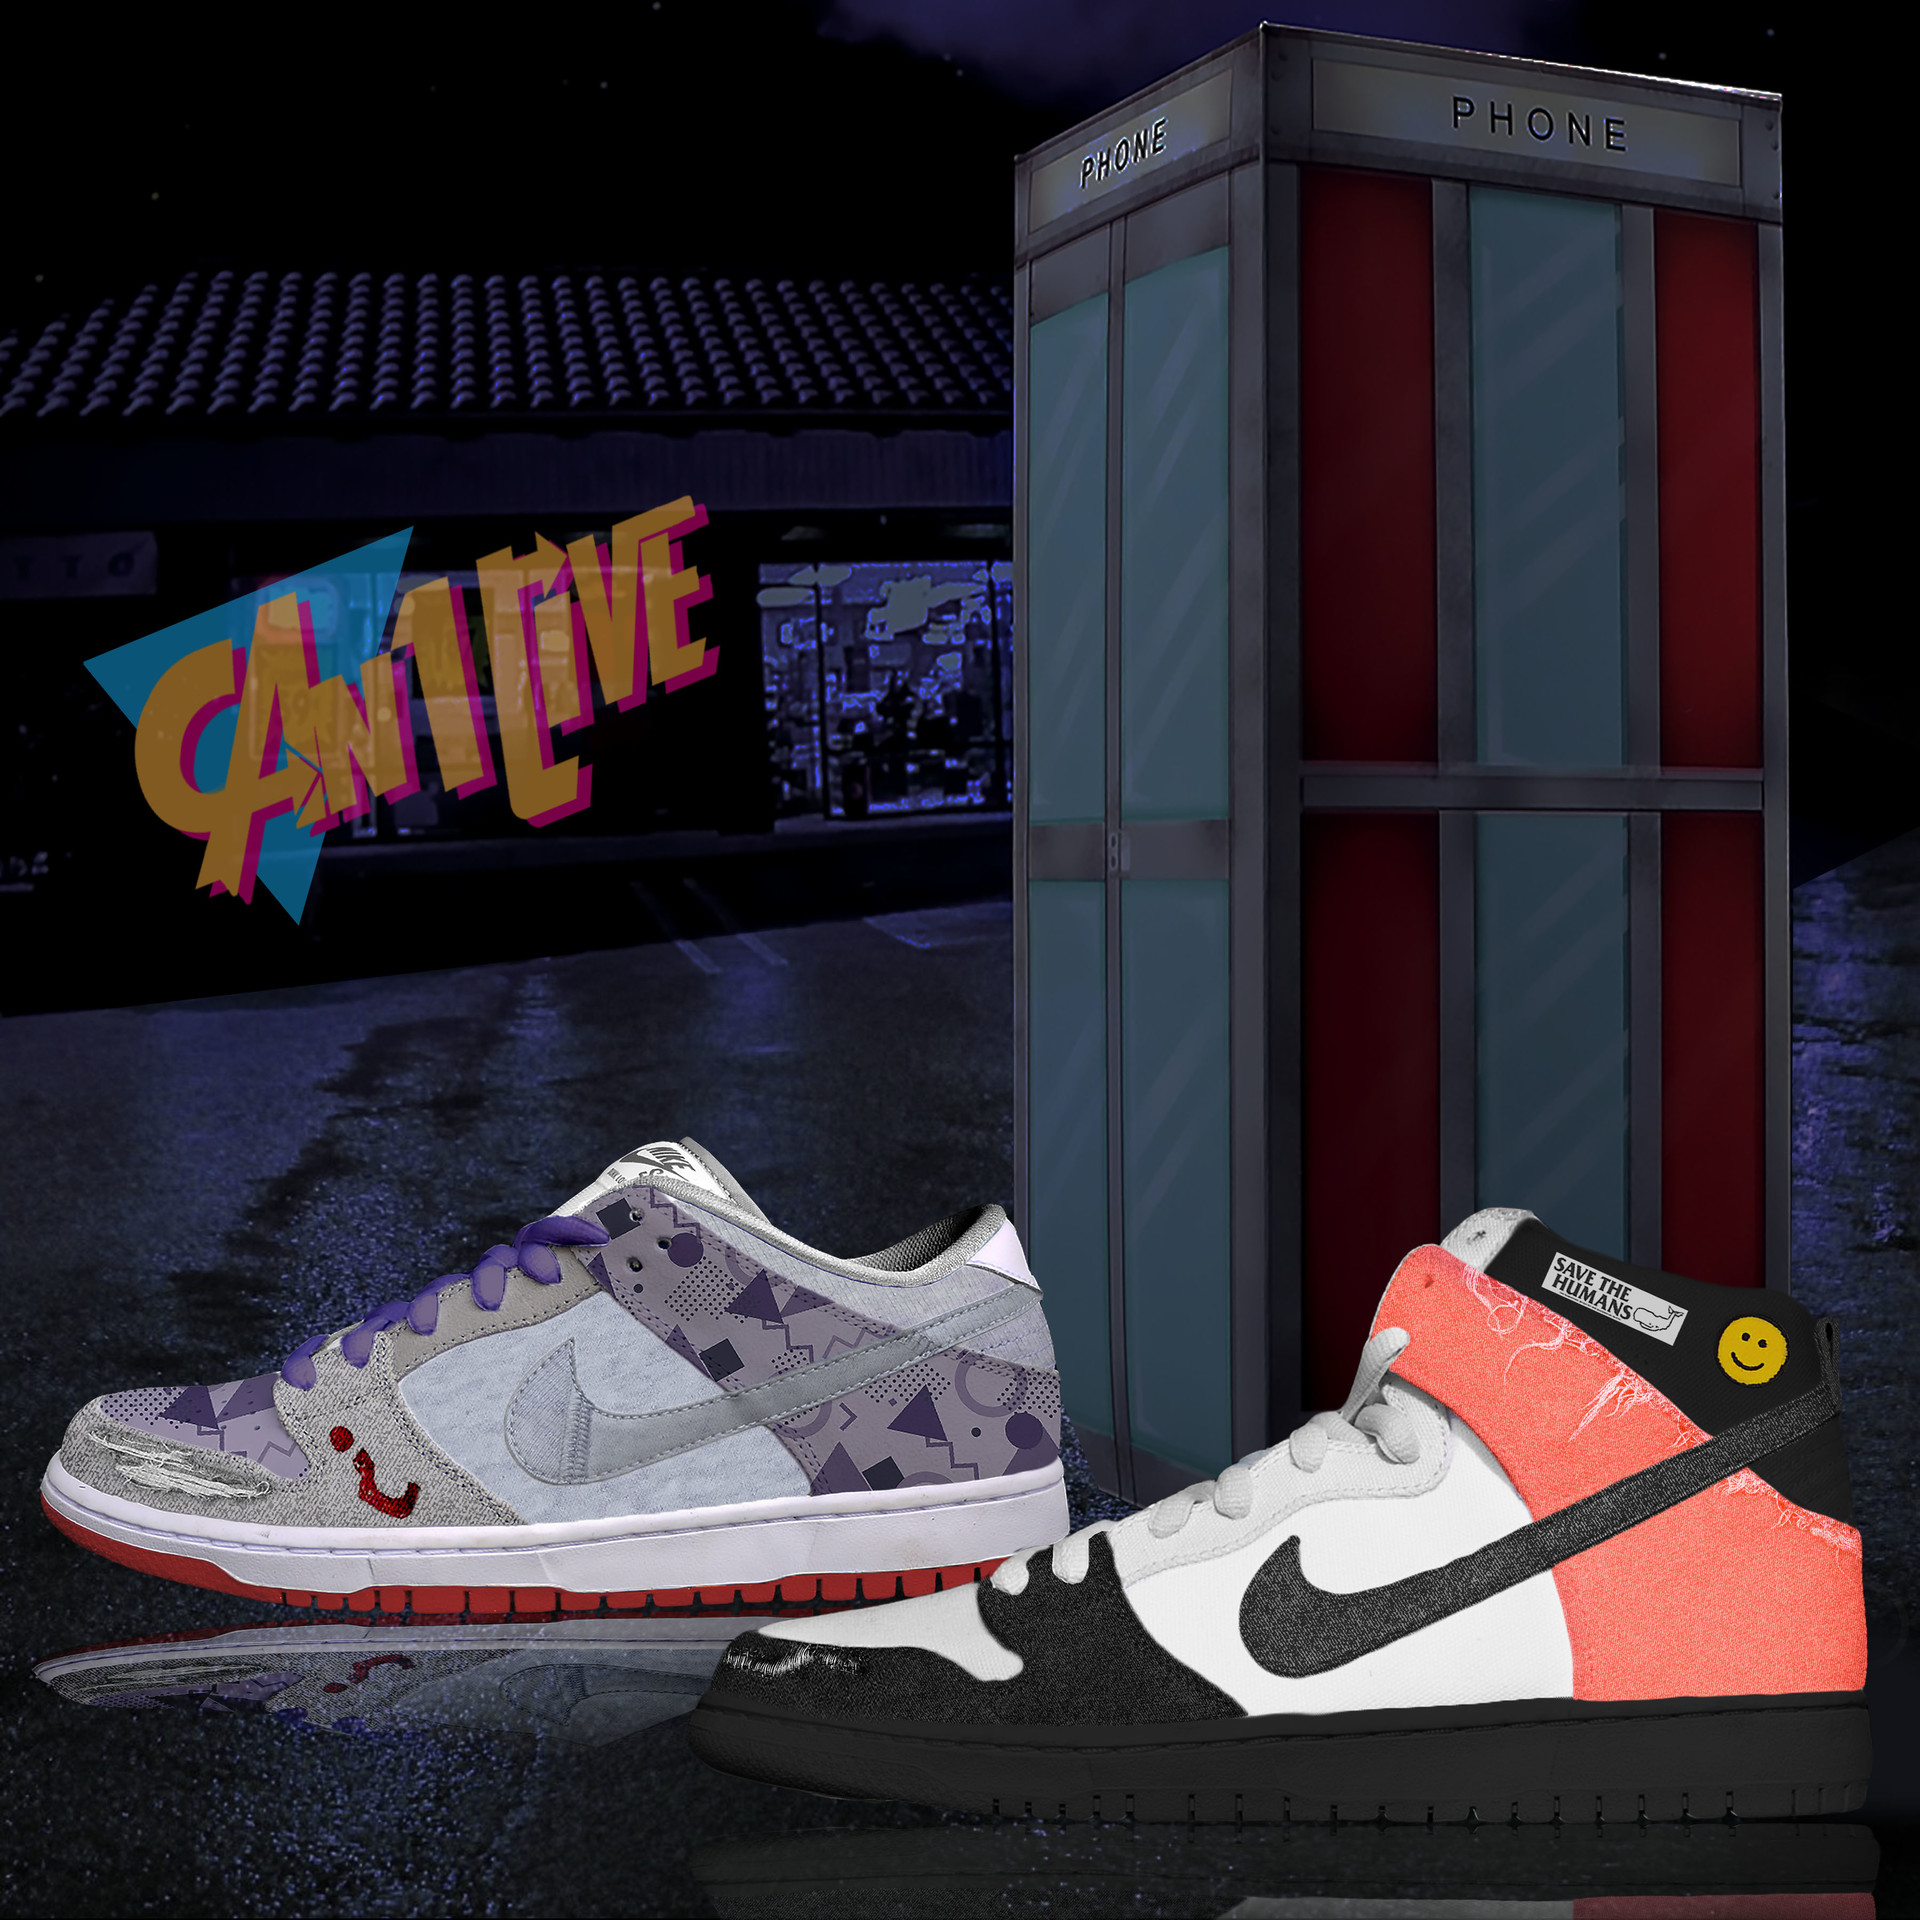 Hunter george bill and ted dunks